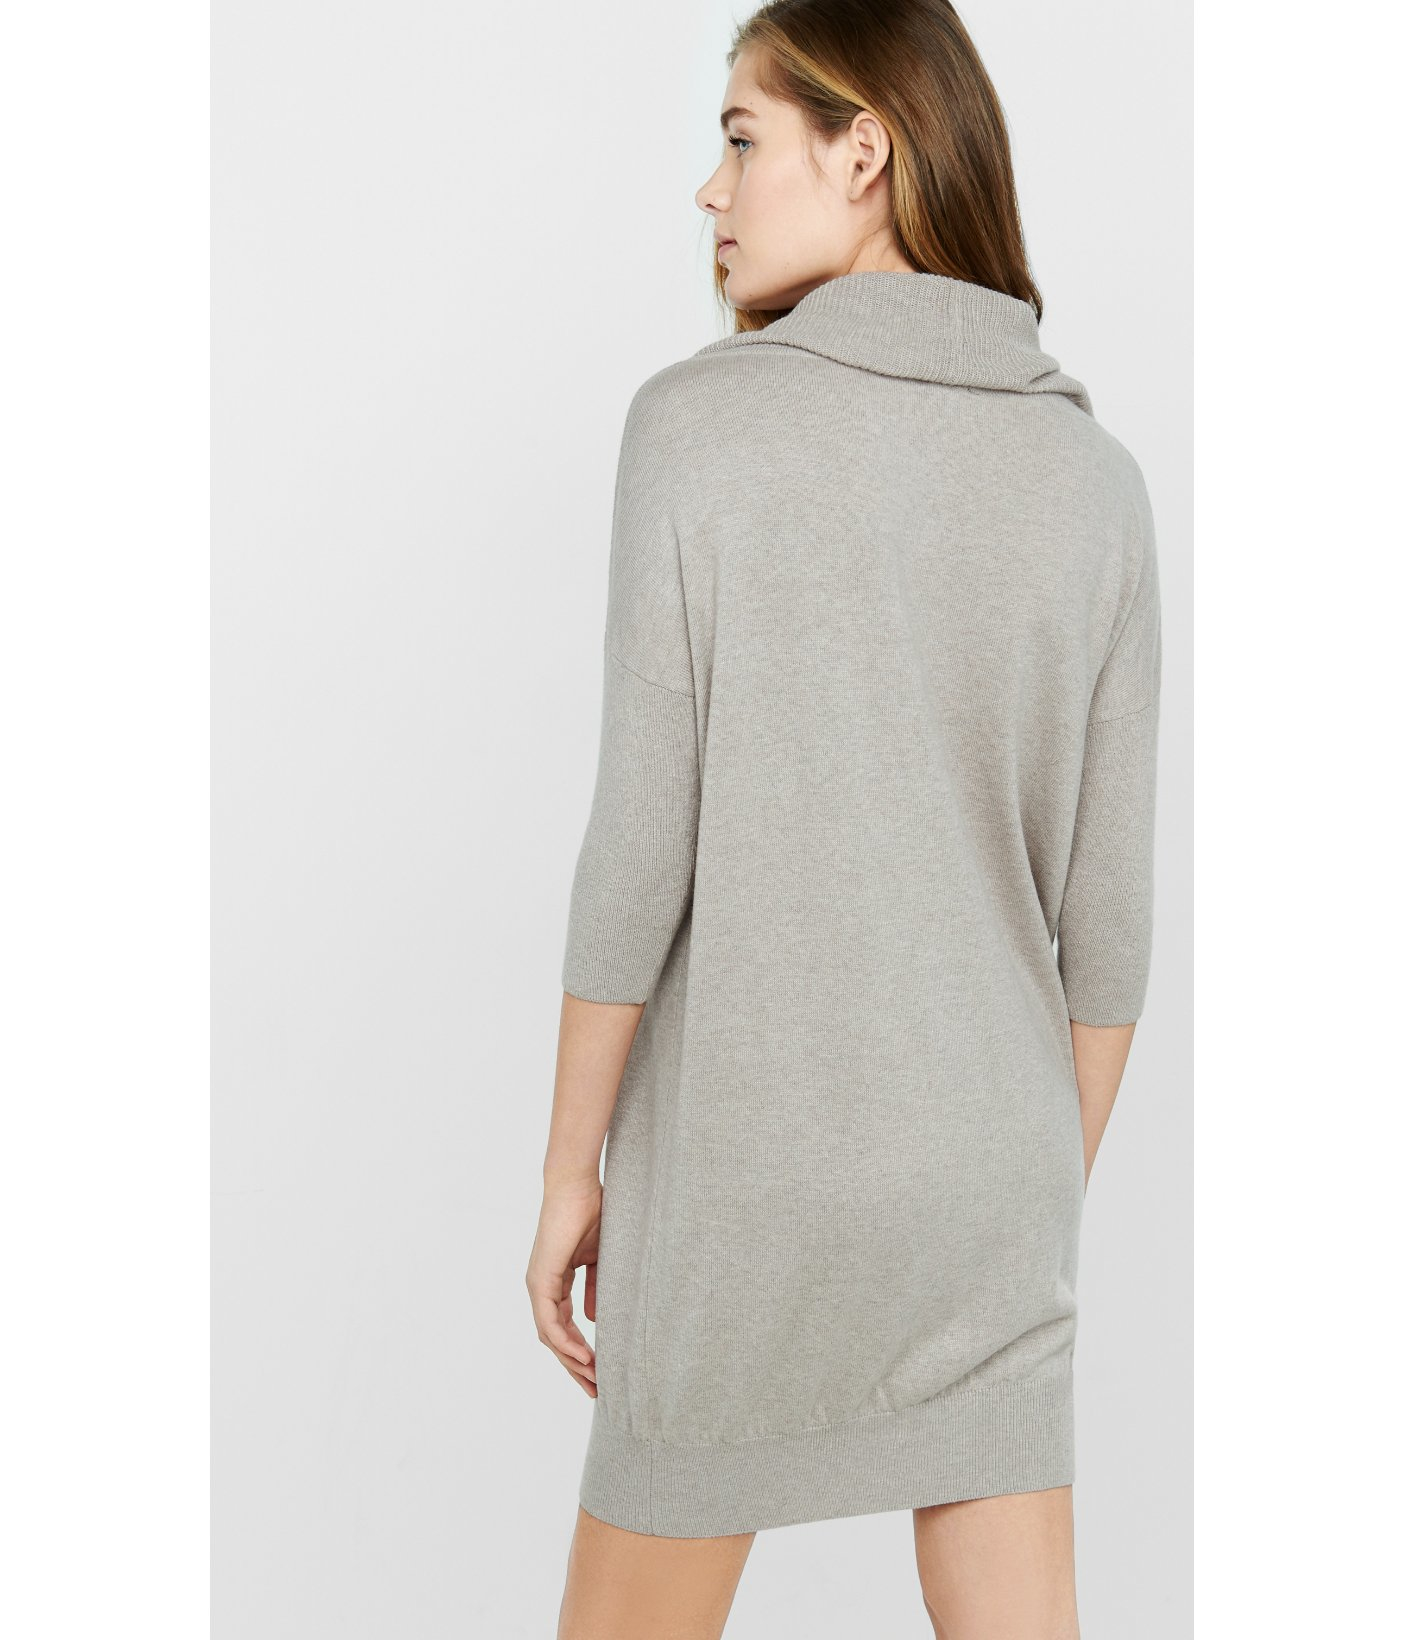 Express Banded Bottom Cowl Neck Sweater Dress in Gray | Lyst